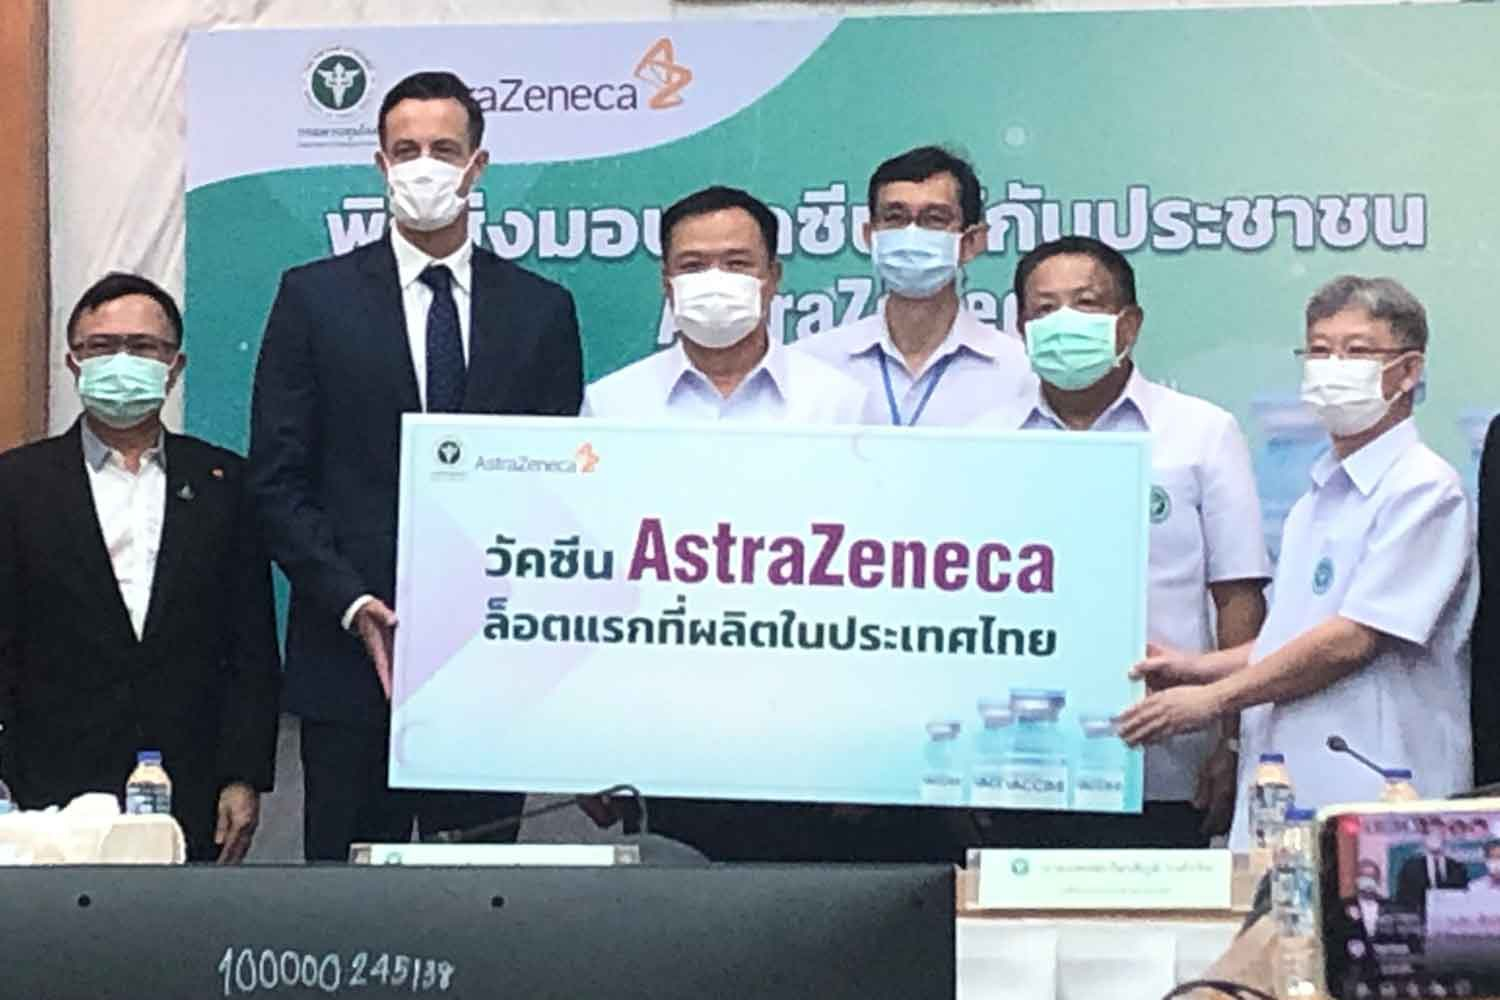 Last Friday (4th), AstraZeneca delivered the first batch of 1.8 million doses of vaccine produced in Siam Biotech